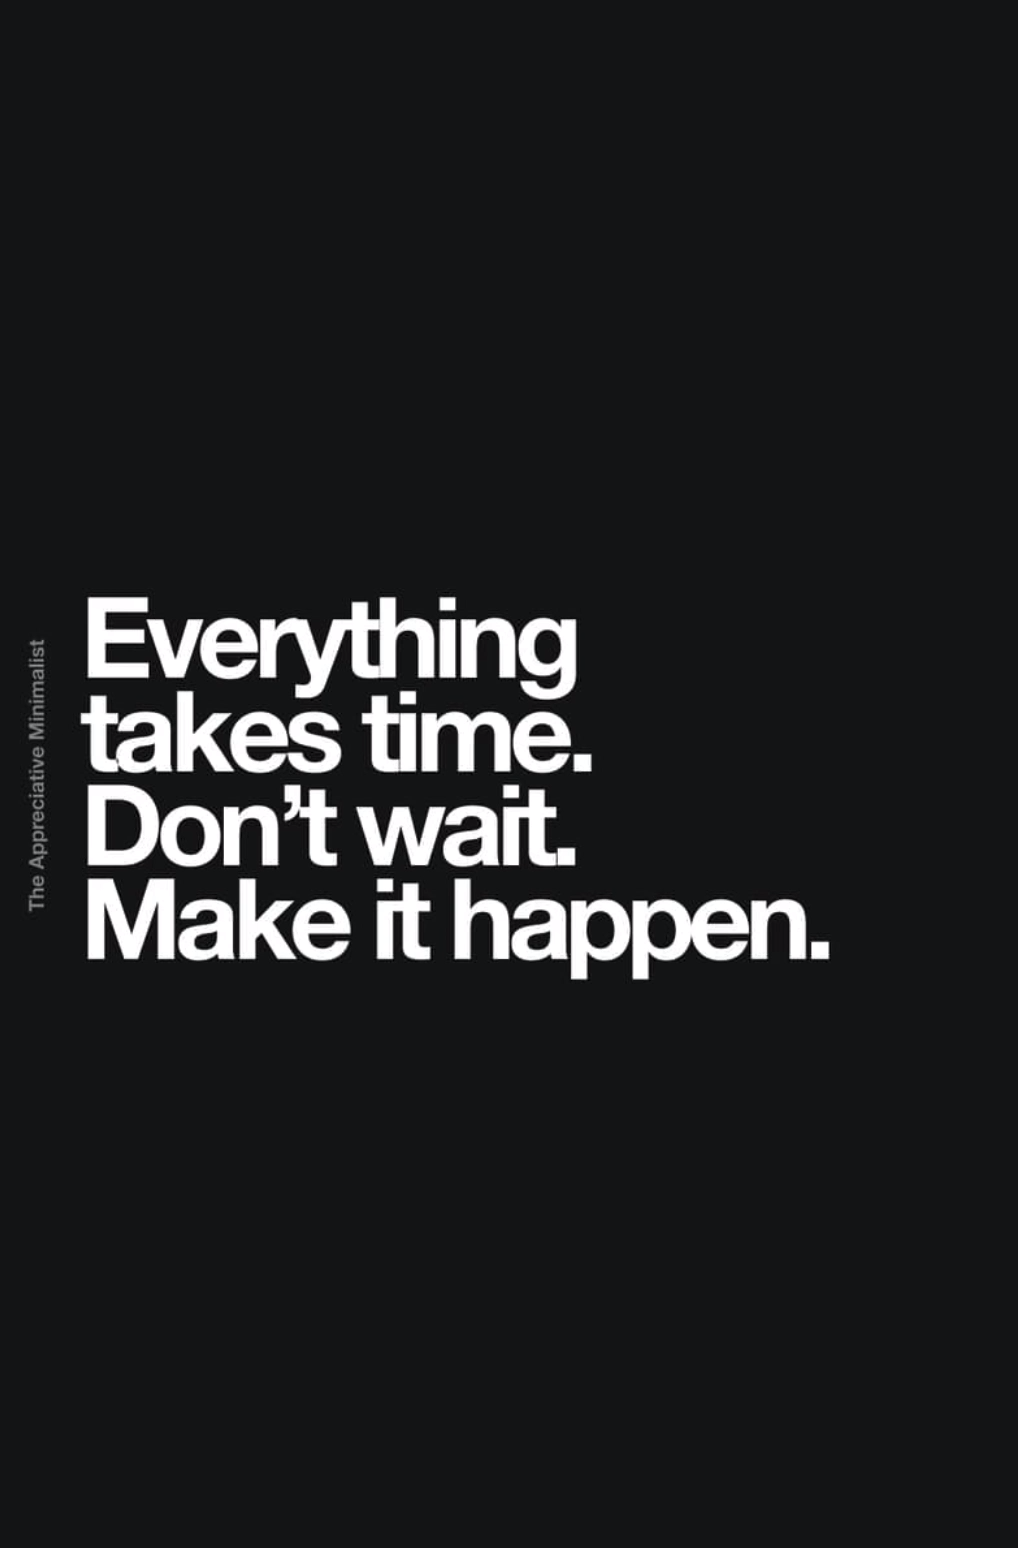 Everything takes time.